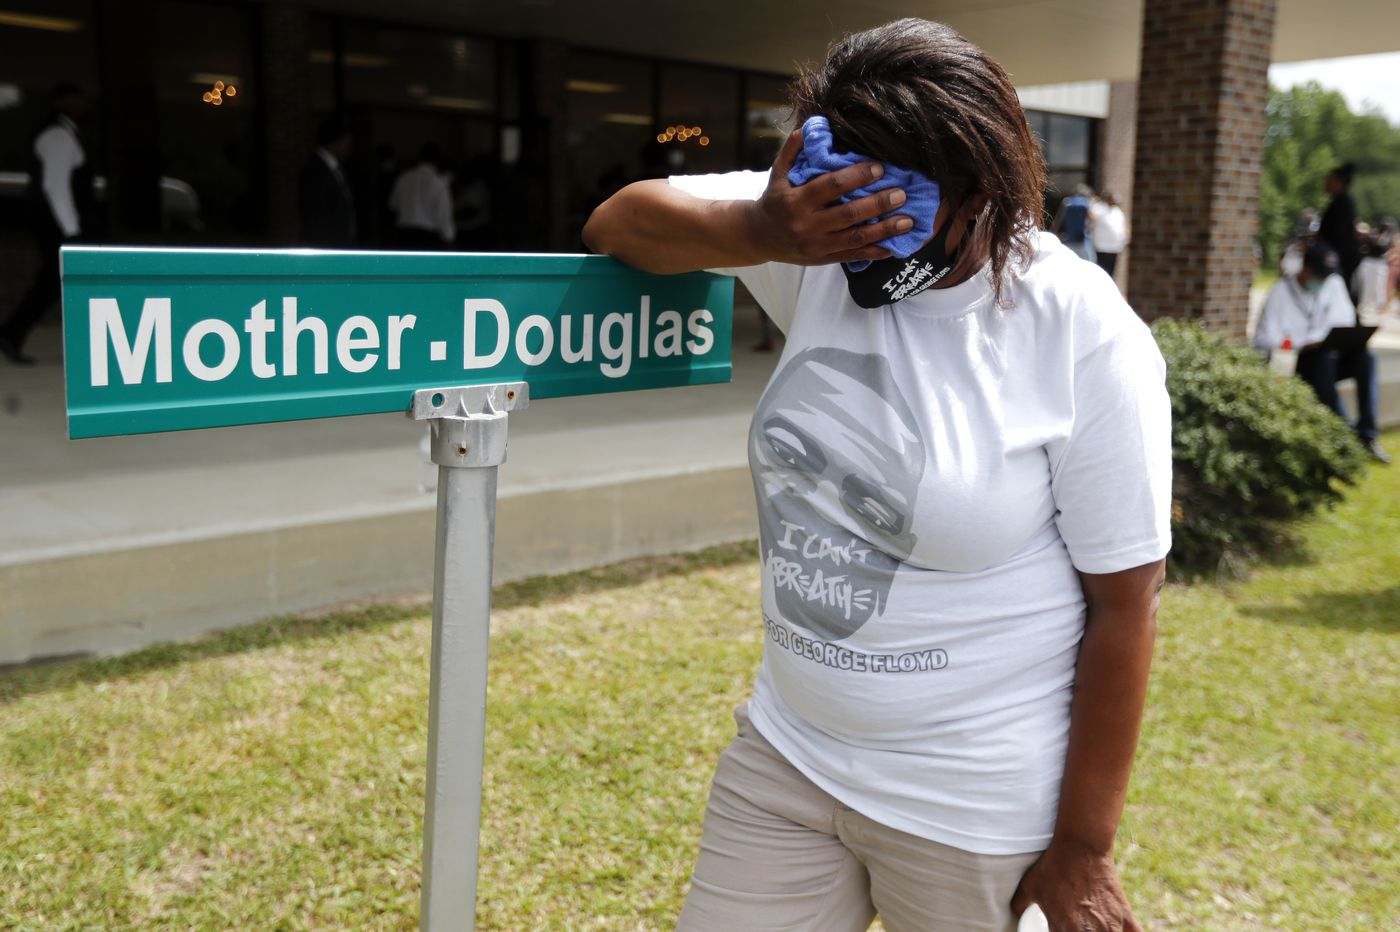 Mourners hold memorial for Floyd as more protests take shape